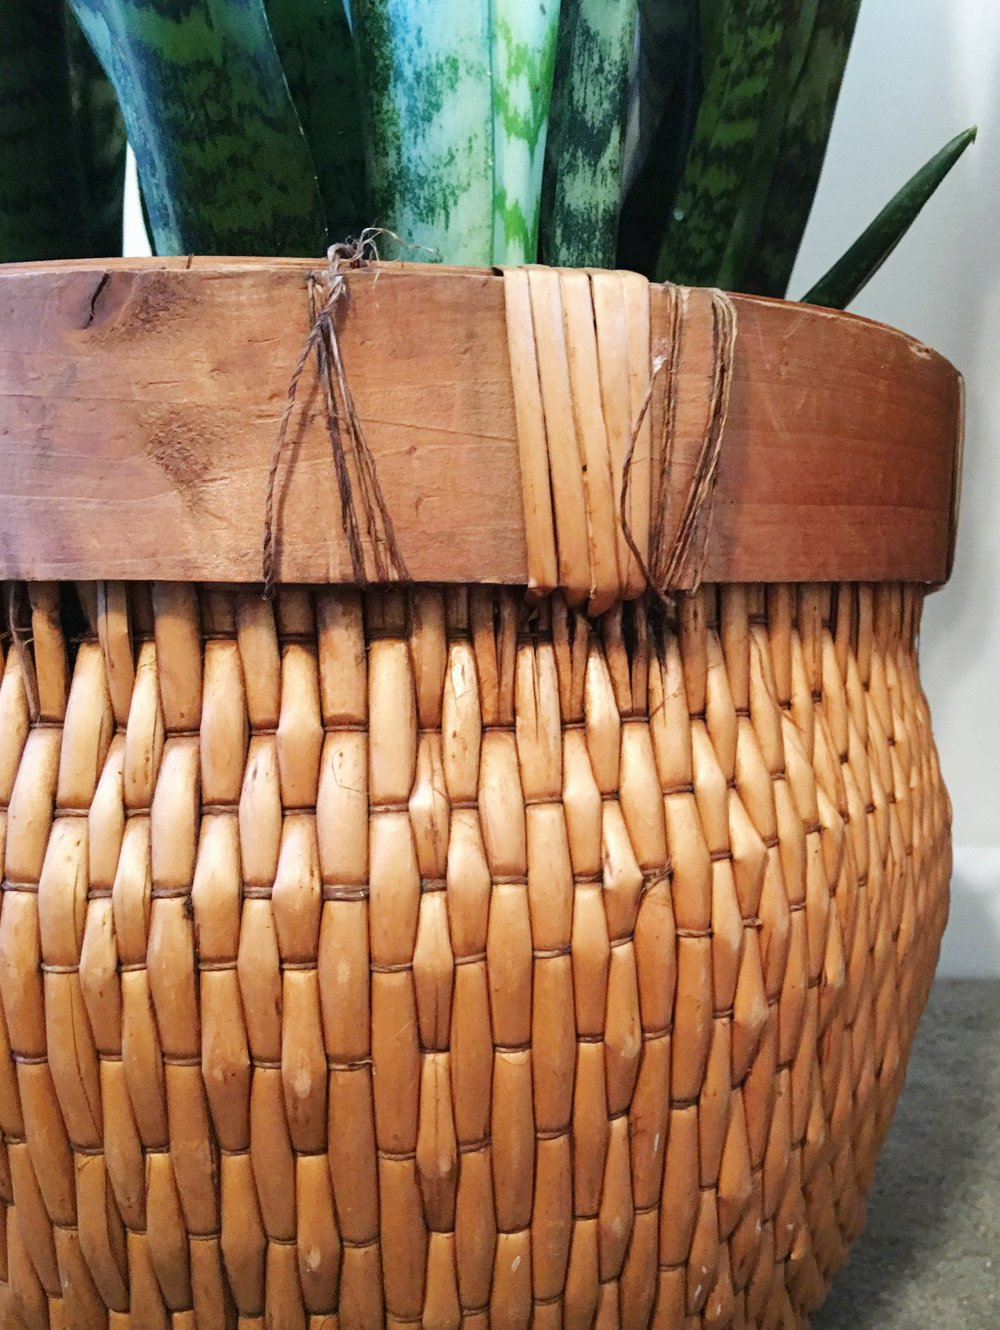 This vintage plant basket adds a whole lotta rustic earthy vibe to the bedroom.